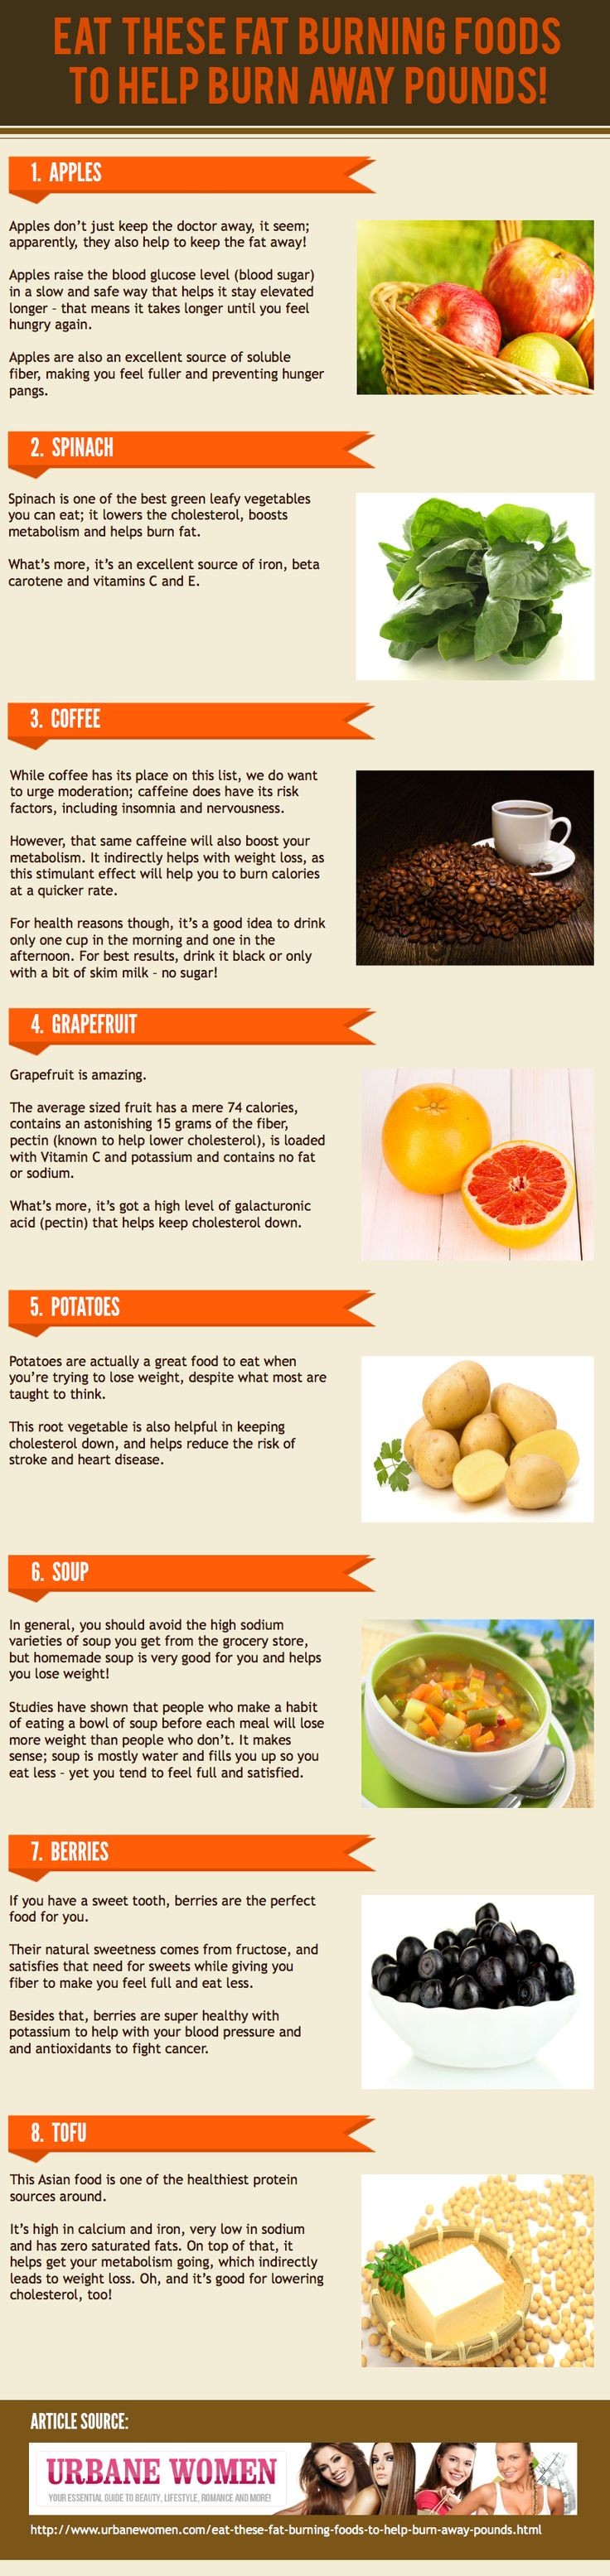 Eat These Fat Burning Foods To Help Burn Away Pounds! #Infographic